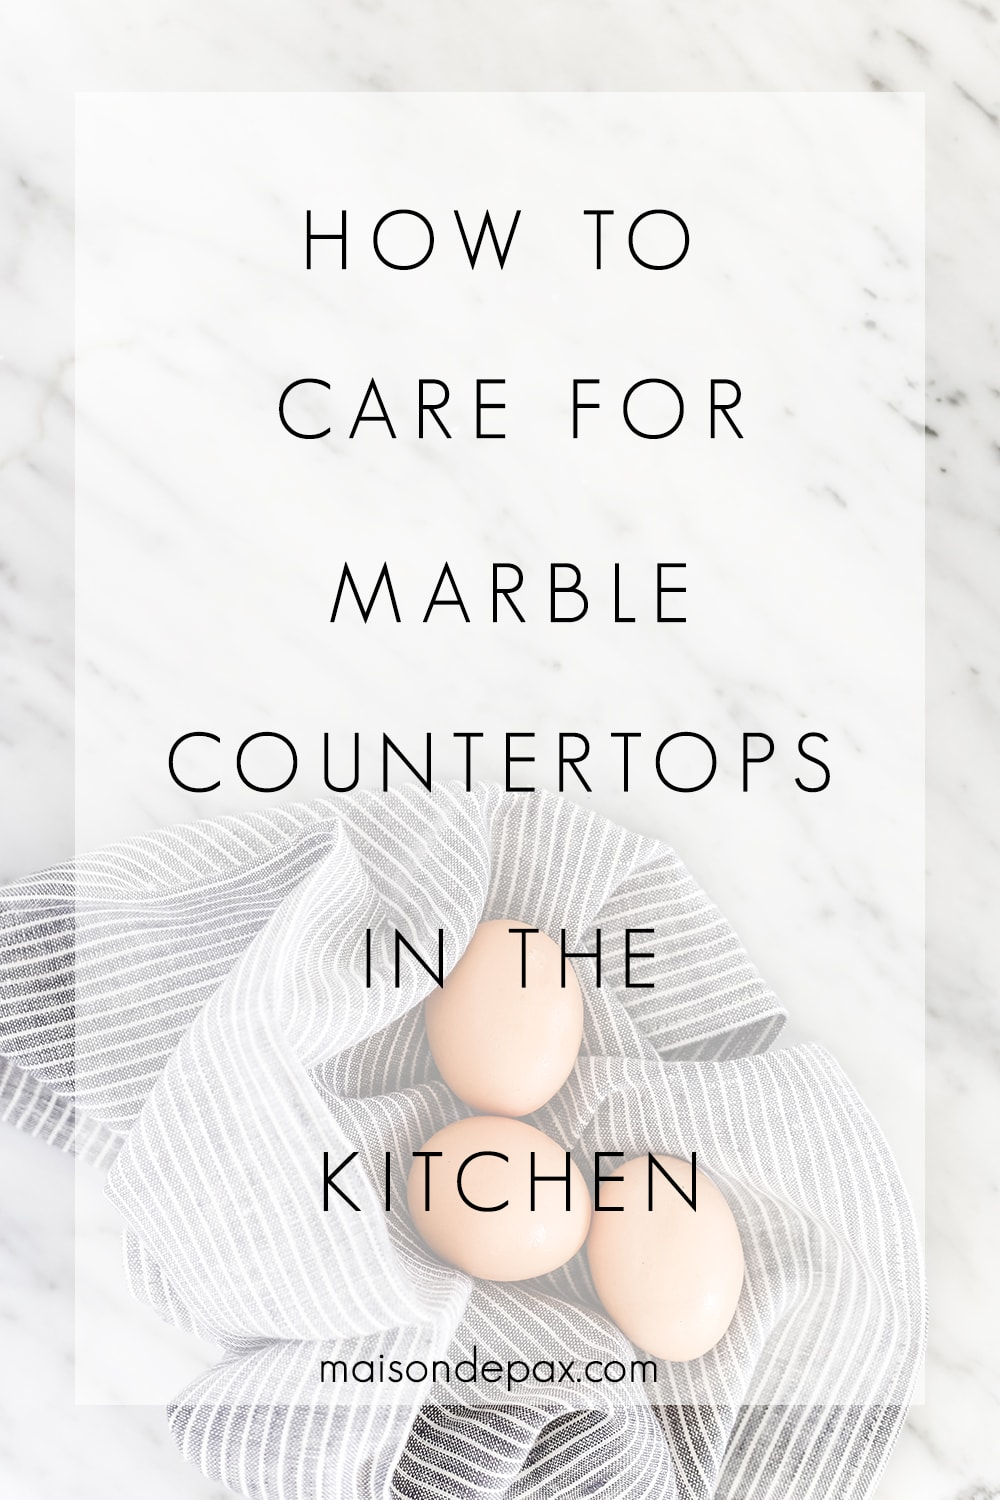 Wondering how to care for marble counters?  Don't miss these 5 tips on caring for marble countertops, including details on sealing marble counters, removing stains from marble, cleaning marble countertops, and avoiding scratches. #marble #marblecounters #marblecountertops #marblekitchen #marblecare #kitchencounters #kitchencountertops #carraramarble #cleaningmarble #marblesealer